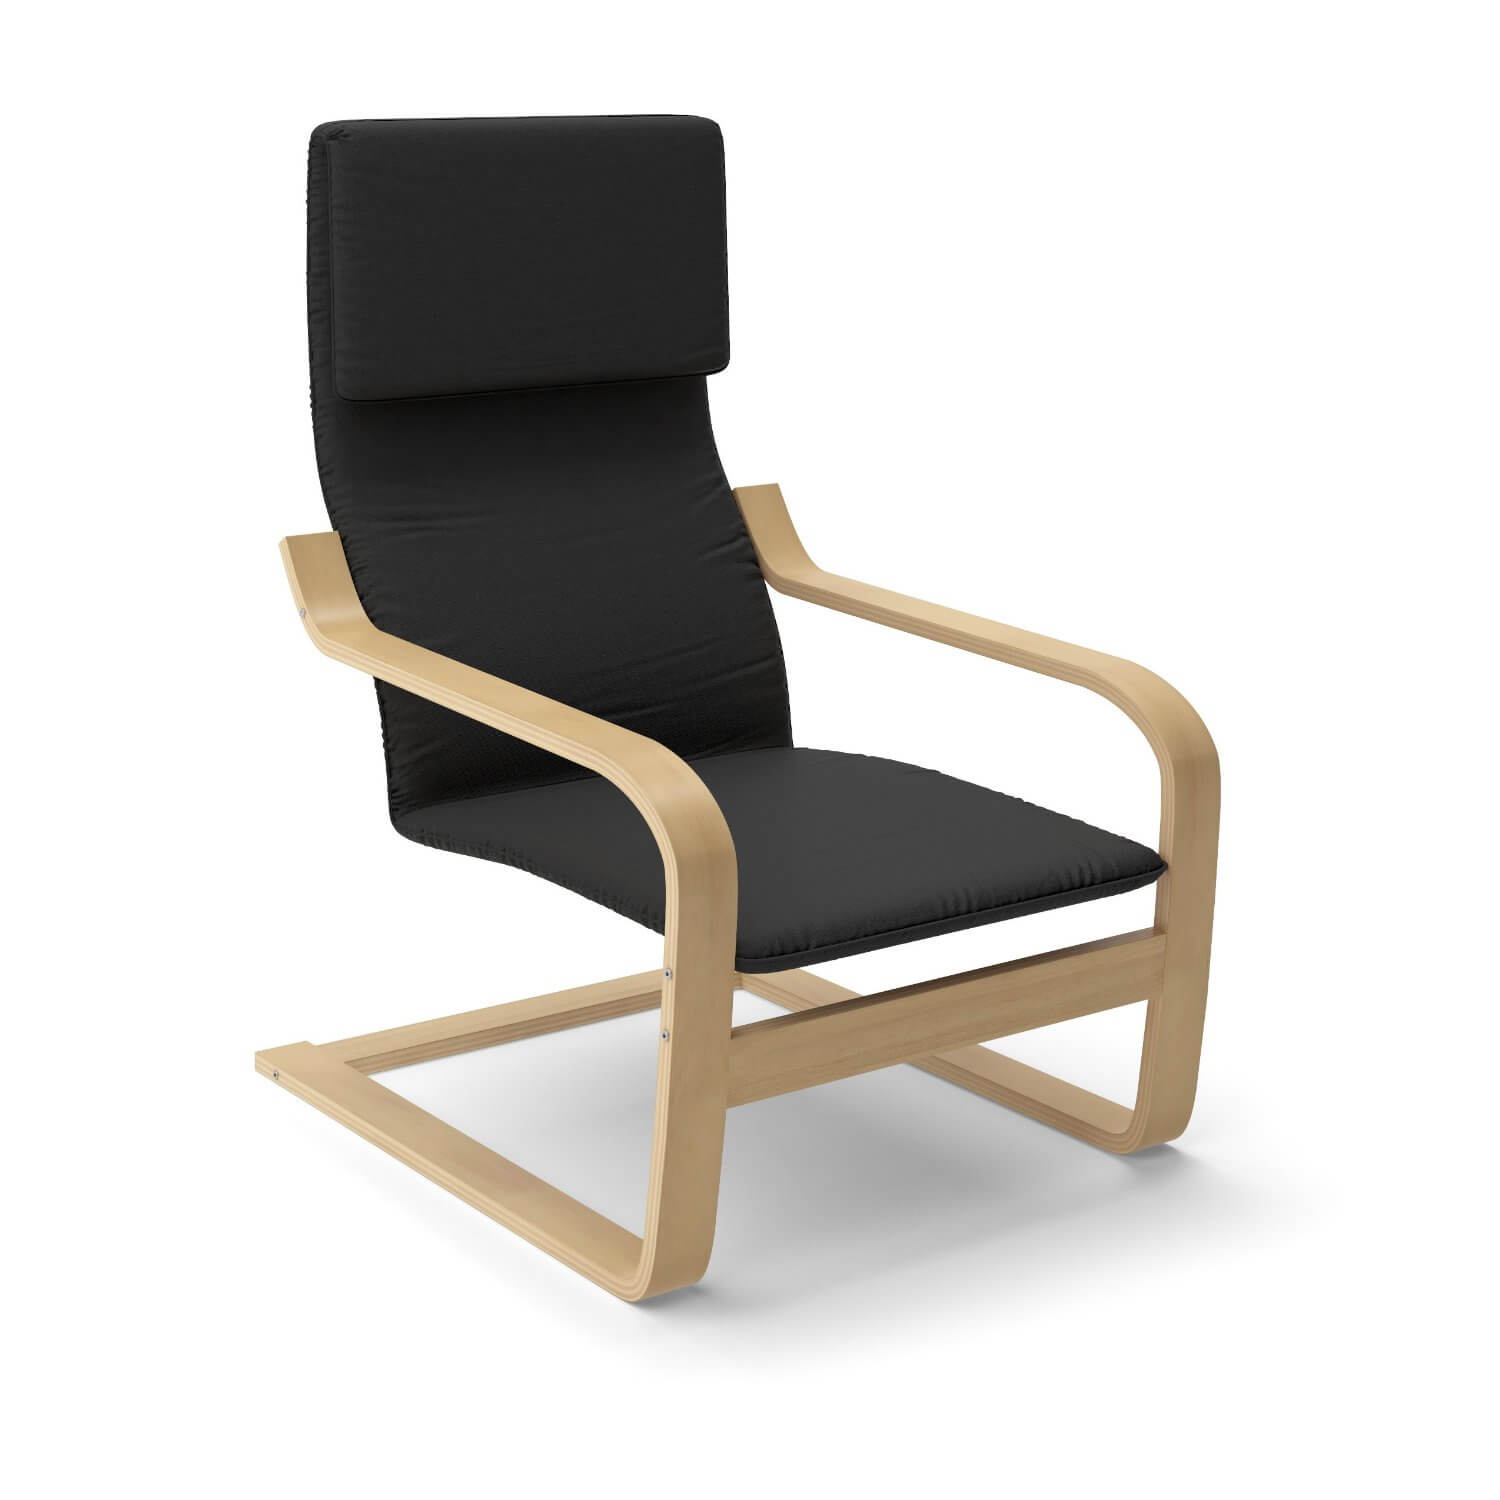 accent chair under 100 folding rental nyc 10 attractive chairs 2019 here s a contemporary for casual rooms